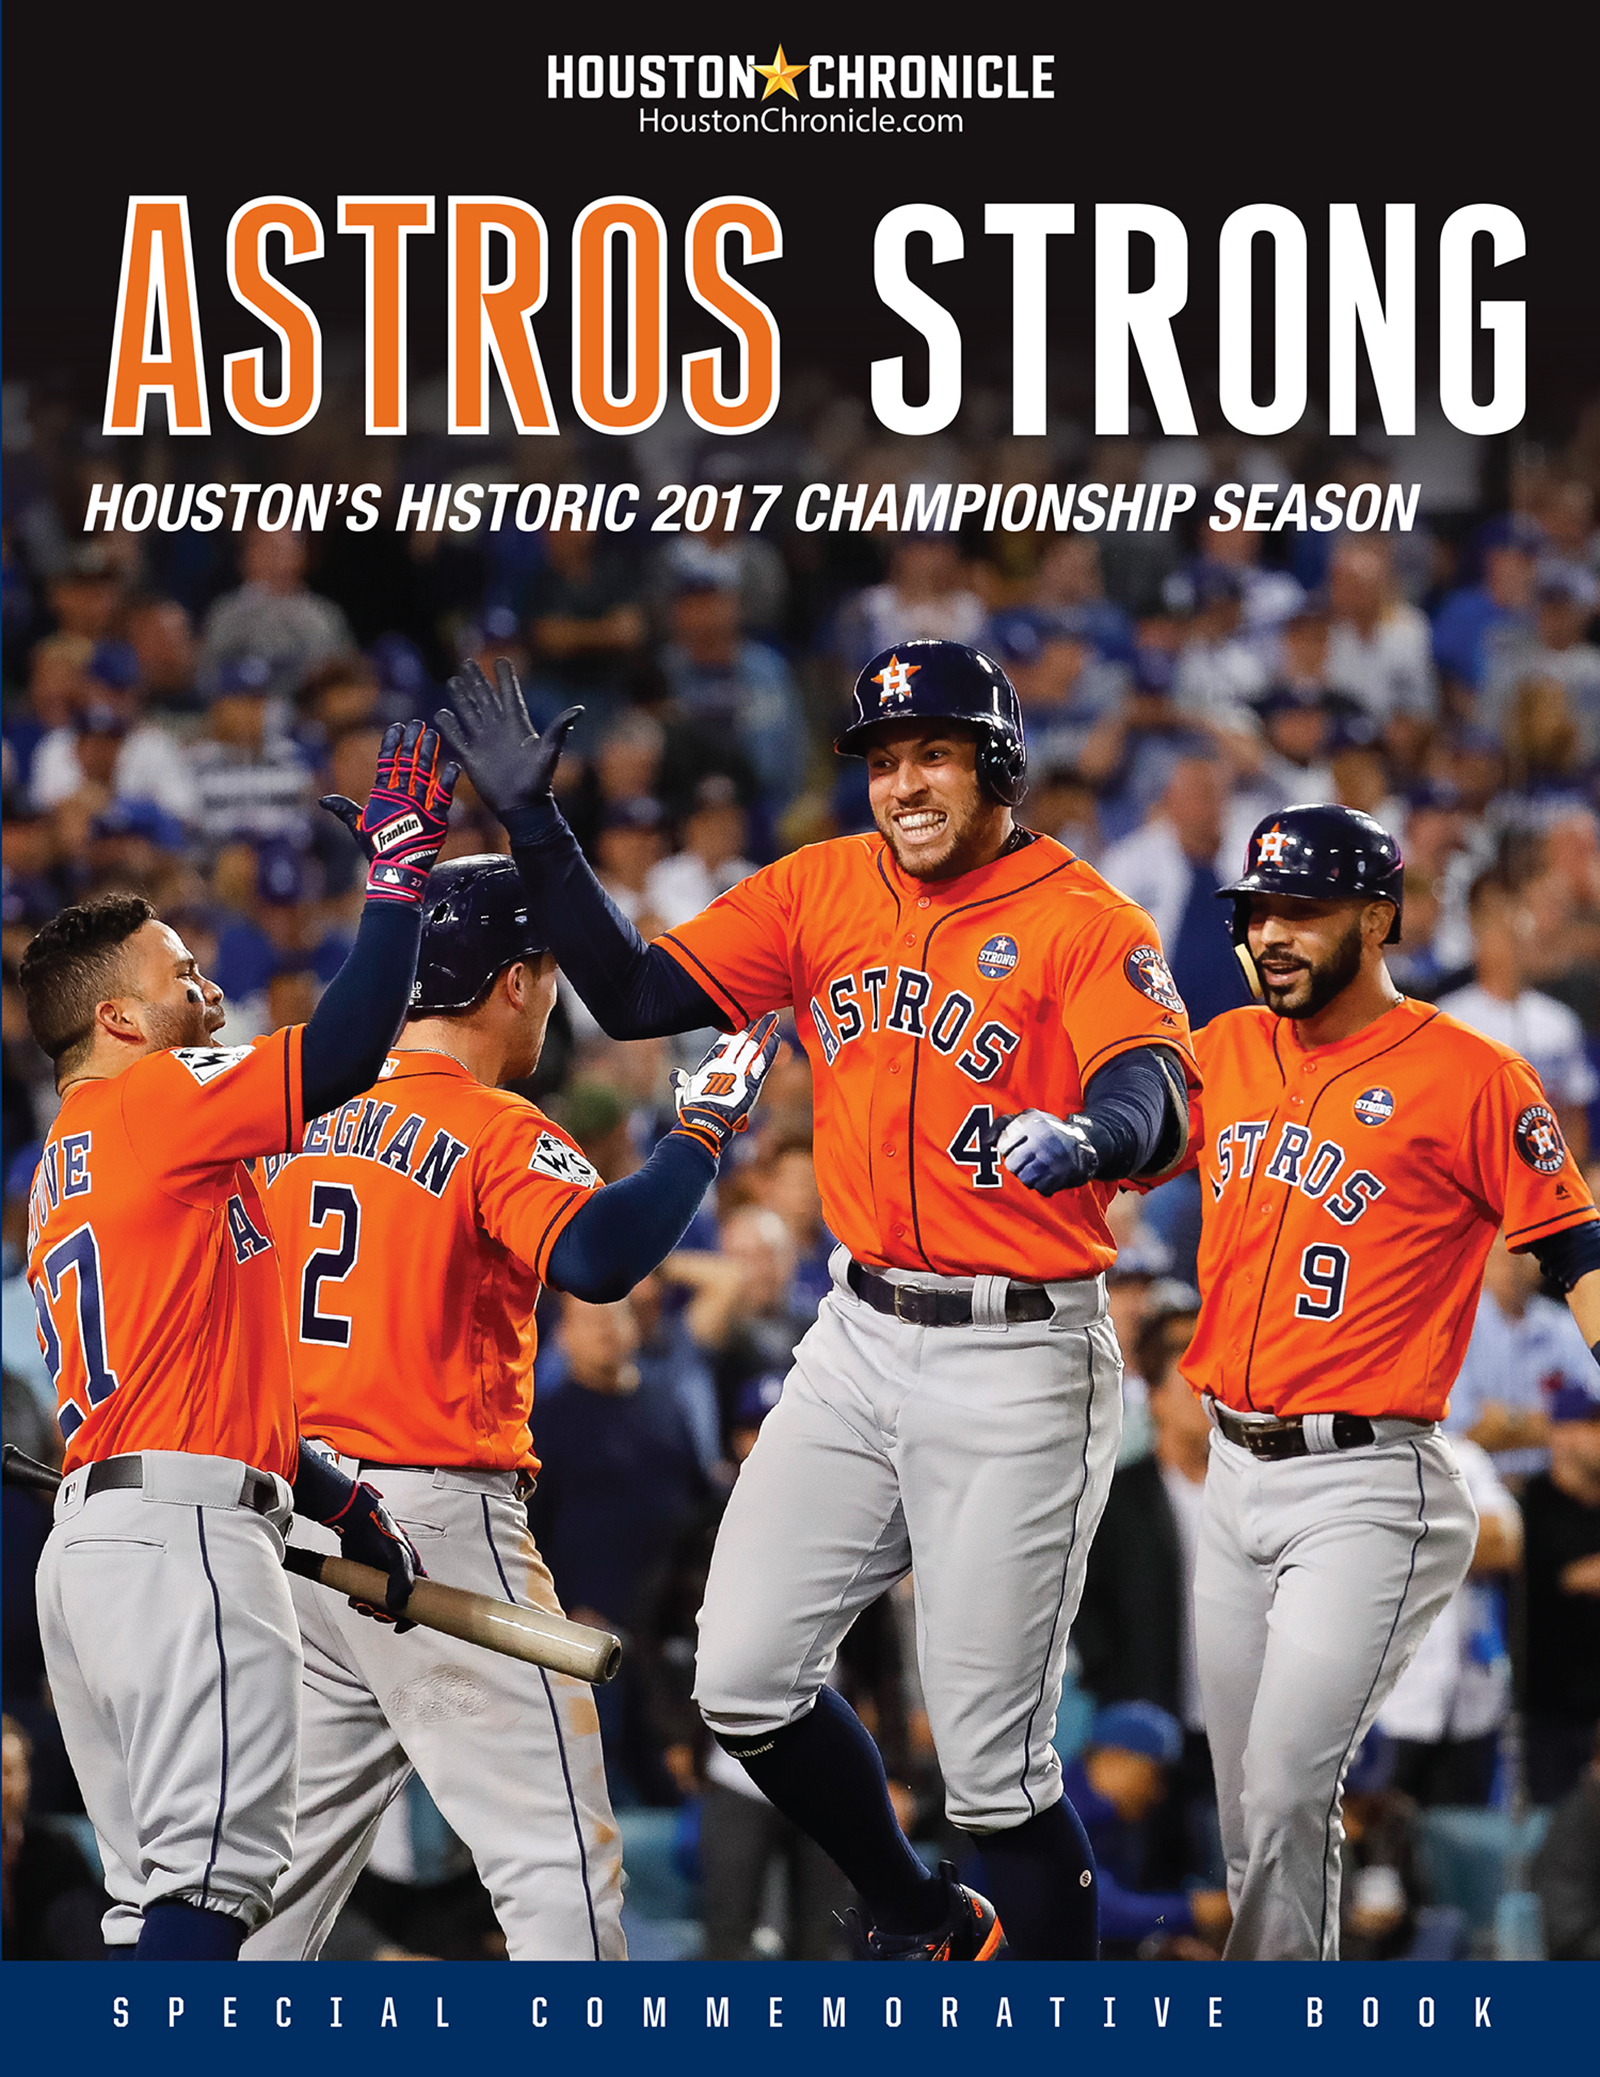 Astros Strong Houston's Historic 2017 Championship Season